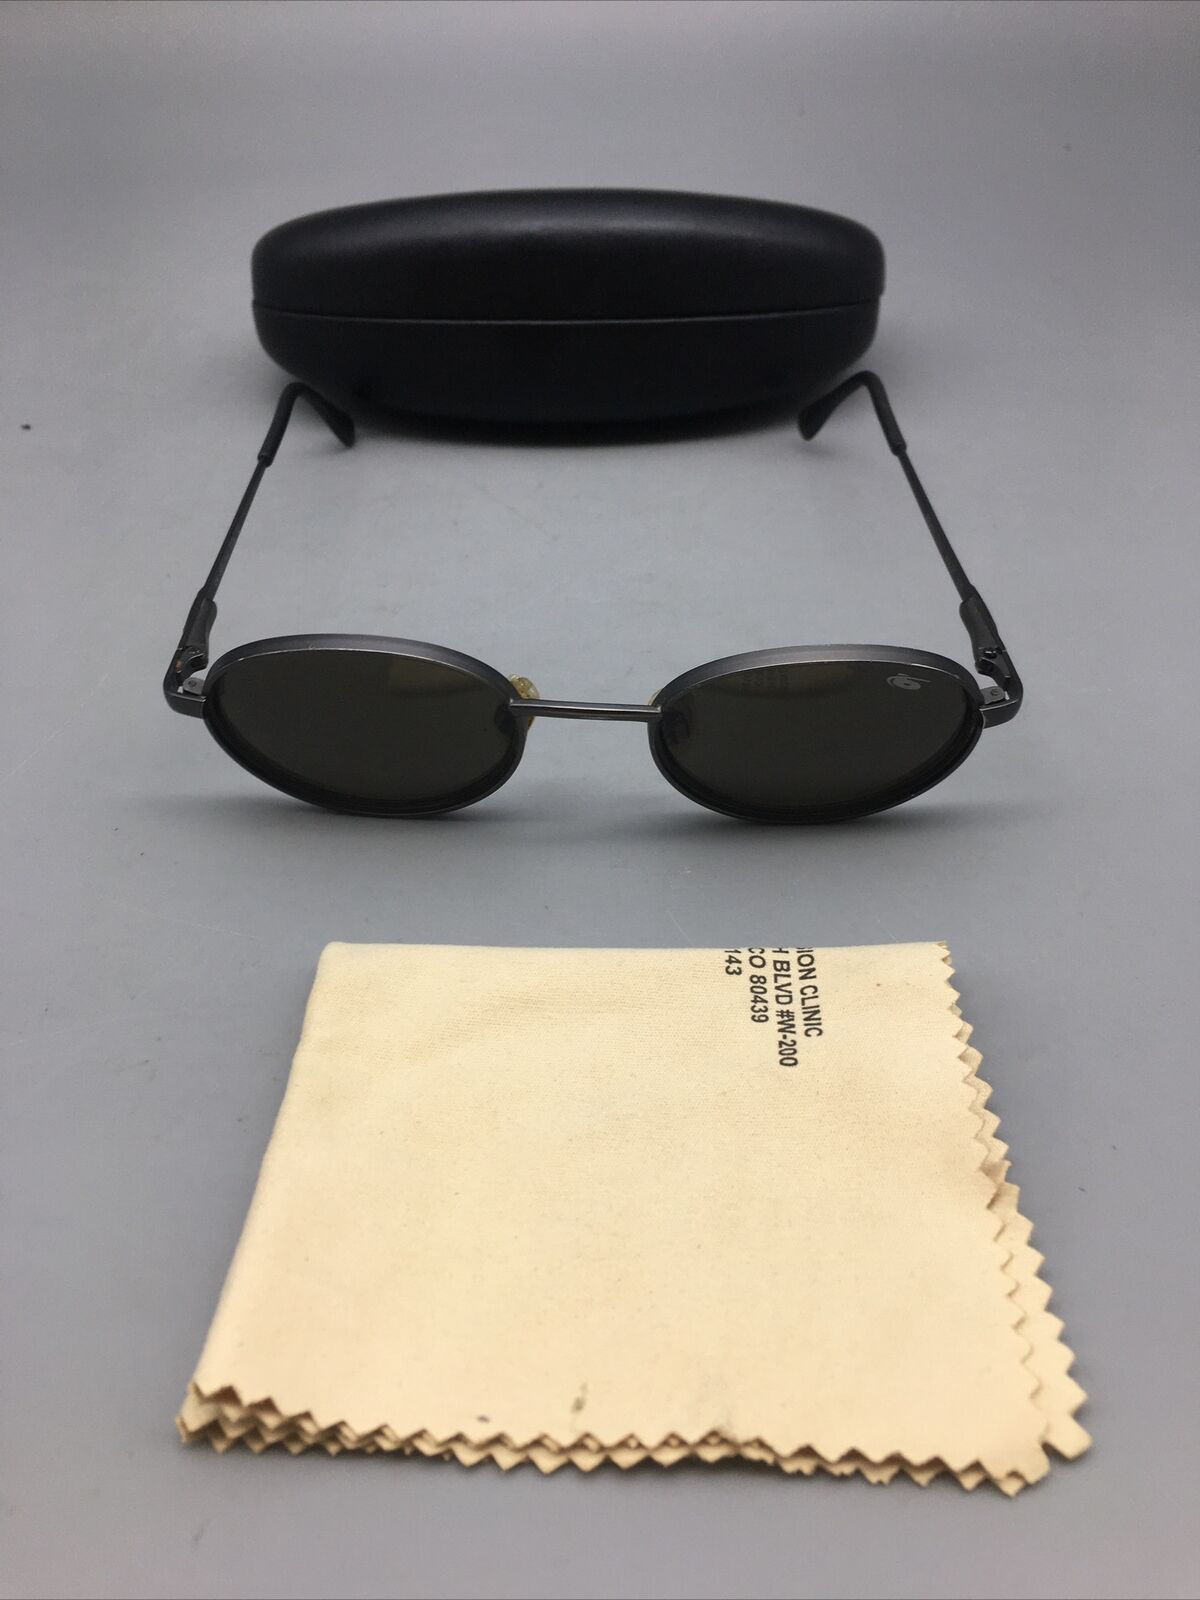 Bolle Metal Sunglasses For Frames Only - Selena Col 70 Italy 48-21 135 A09